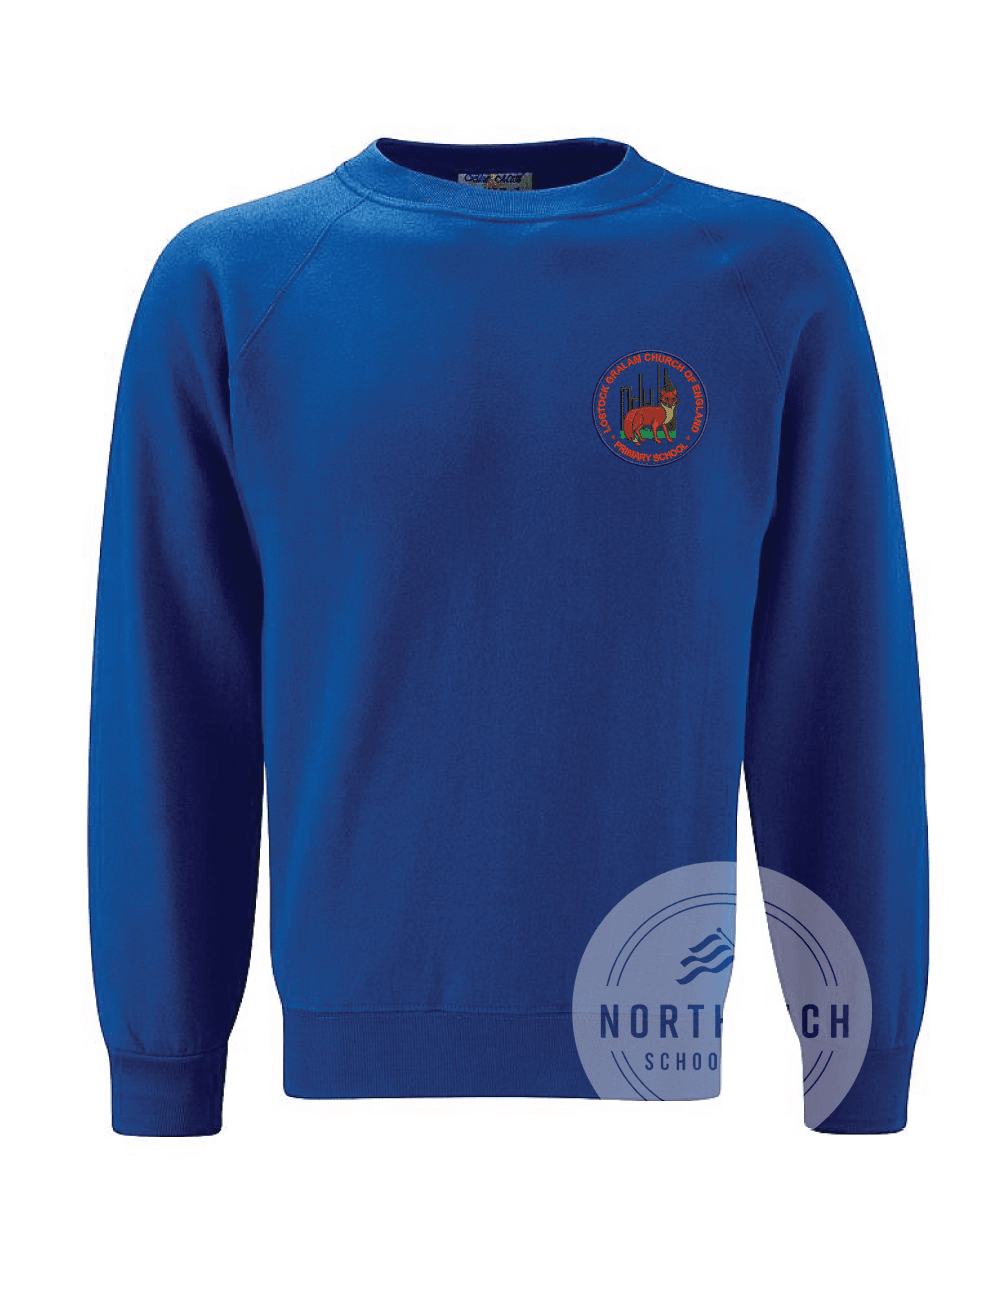 Lostock Primary School Sweatshirt